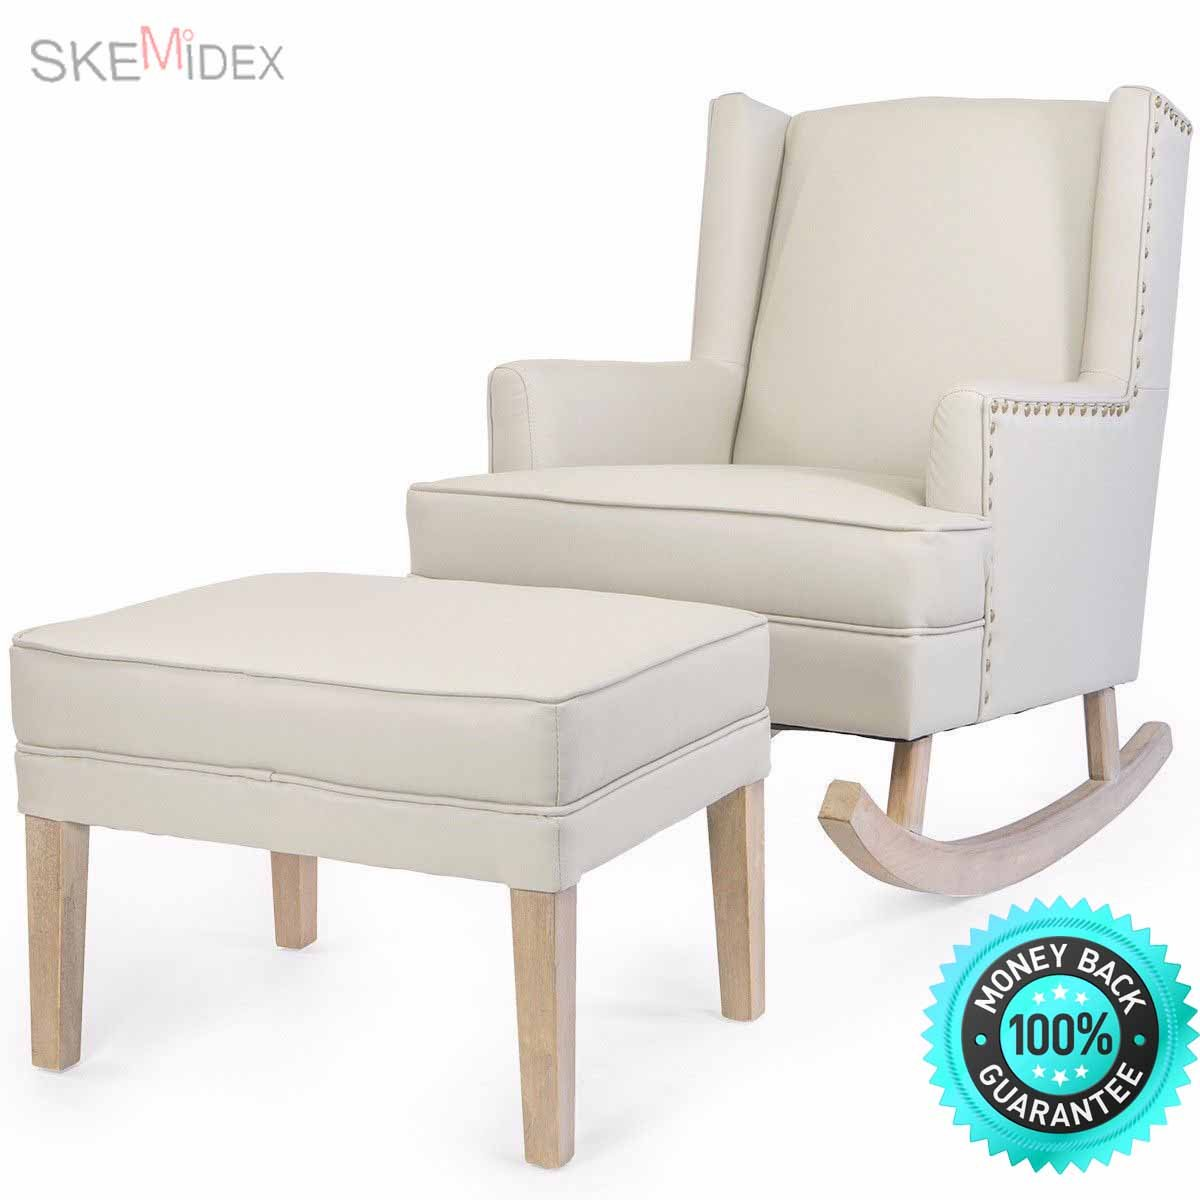 SKEMiDEX--- Baby Nursery leather Rocker Rocking Chair Glider & Ottoman Set w/ Cushion Beige Rock your little one off to the land of dreams effortlessly with help from the Barton synthetic leather.